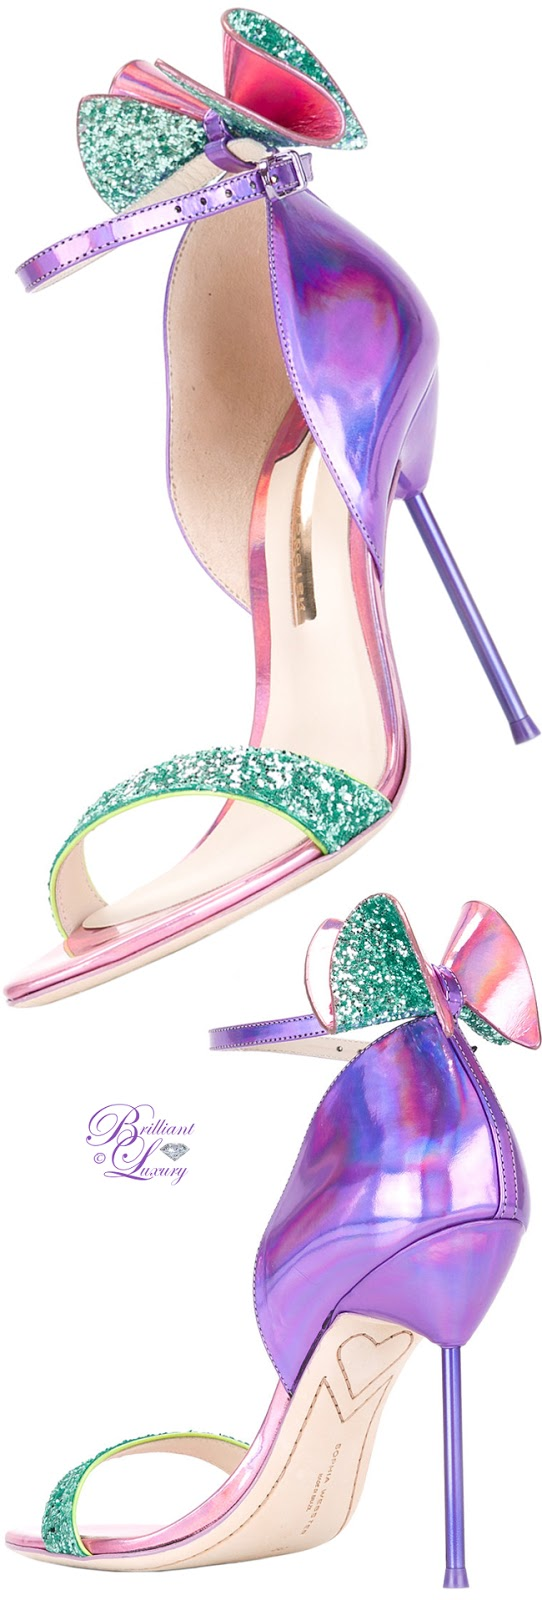 Brilliant Luxury ♦ Sophia Webster Maya Sandals